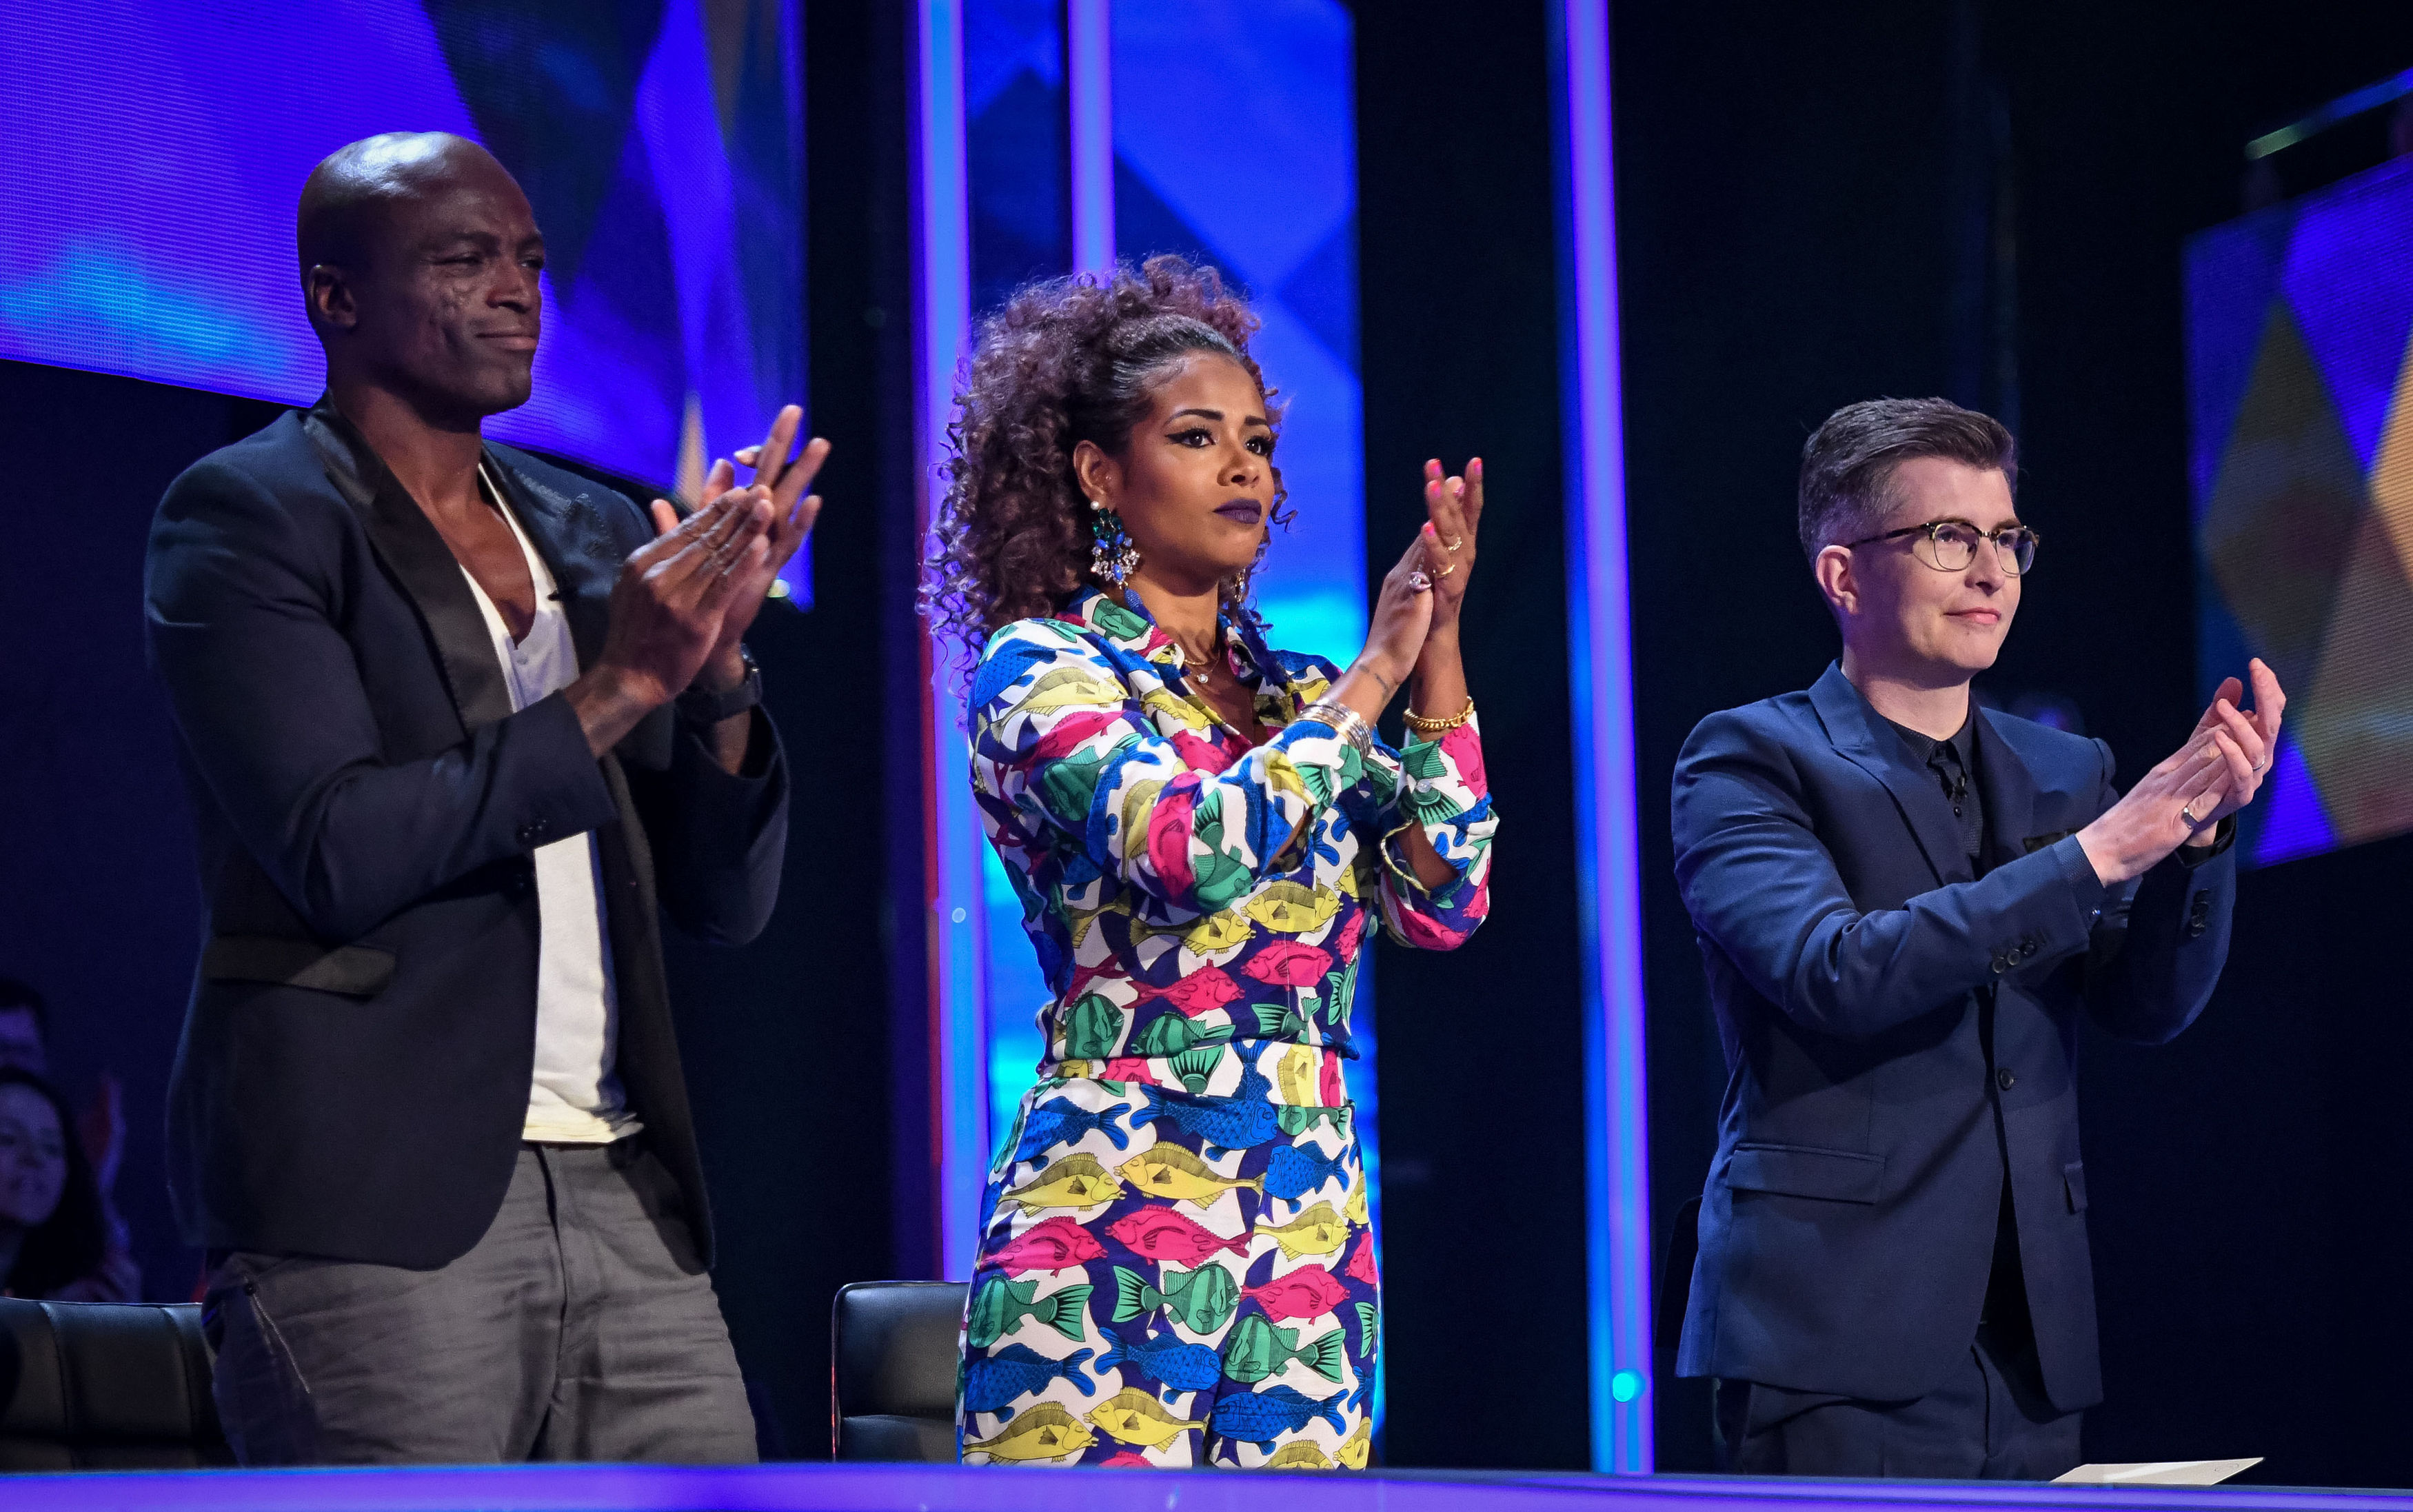 Six choirs to compete in pitch battle final shropshire star kelis gareth malone and seal fandeluxe Ebook collections